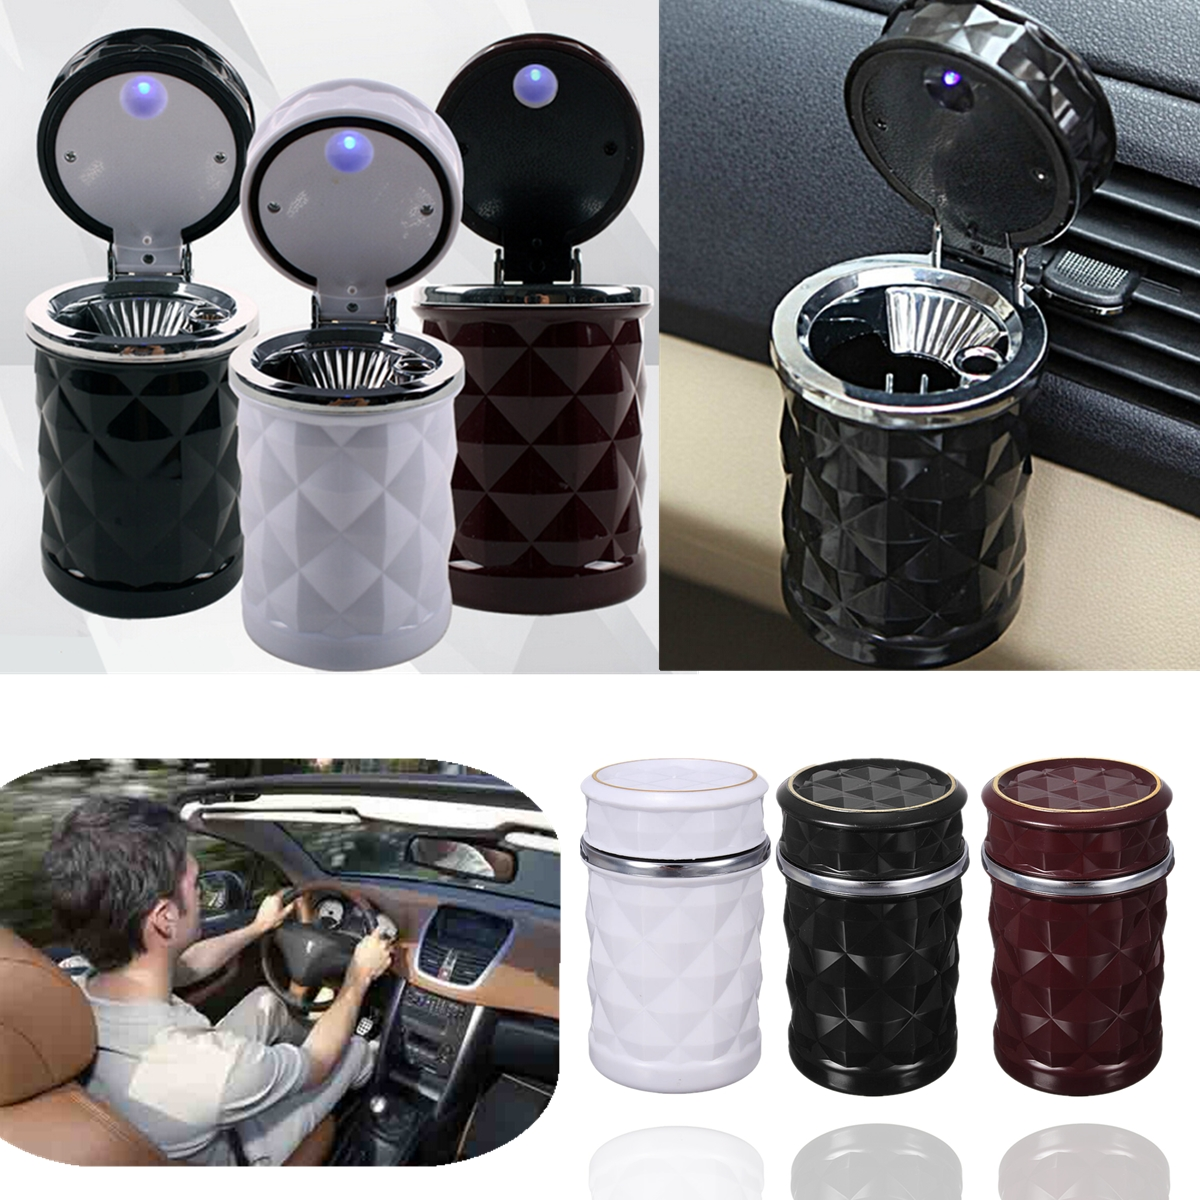 LED Portable Auto Car Ash Ashtray Smokeless Stand Cylinder Cup Holder